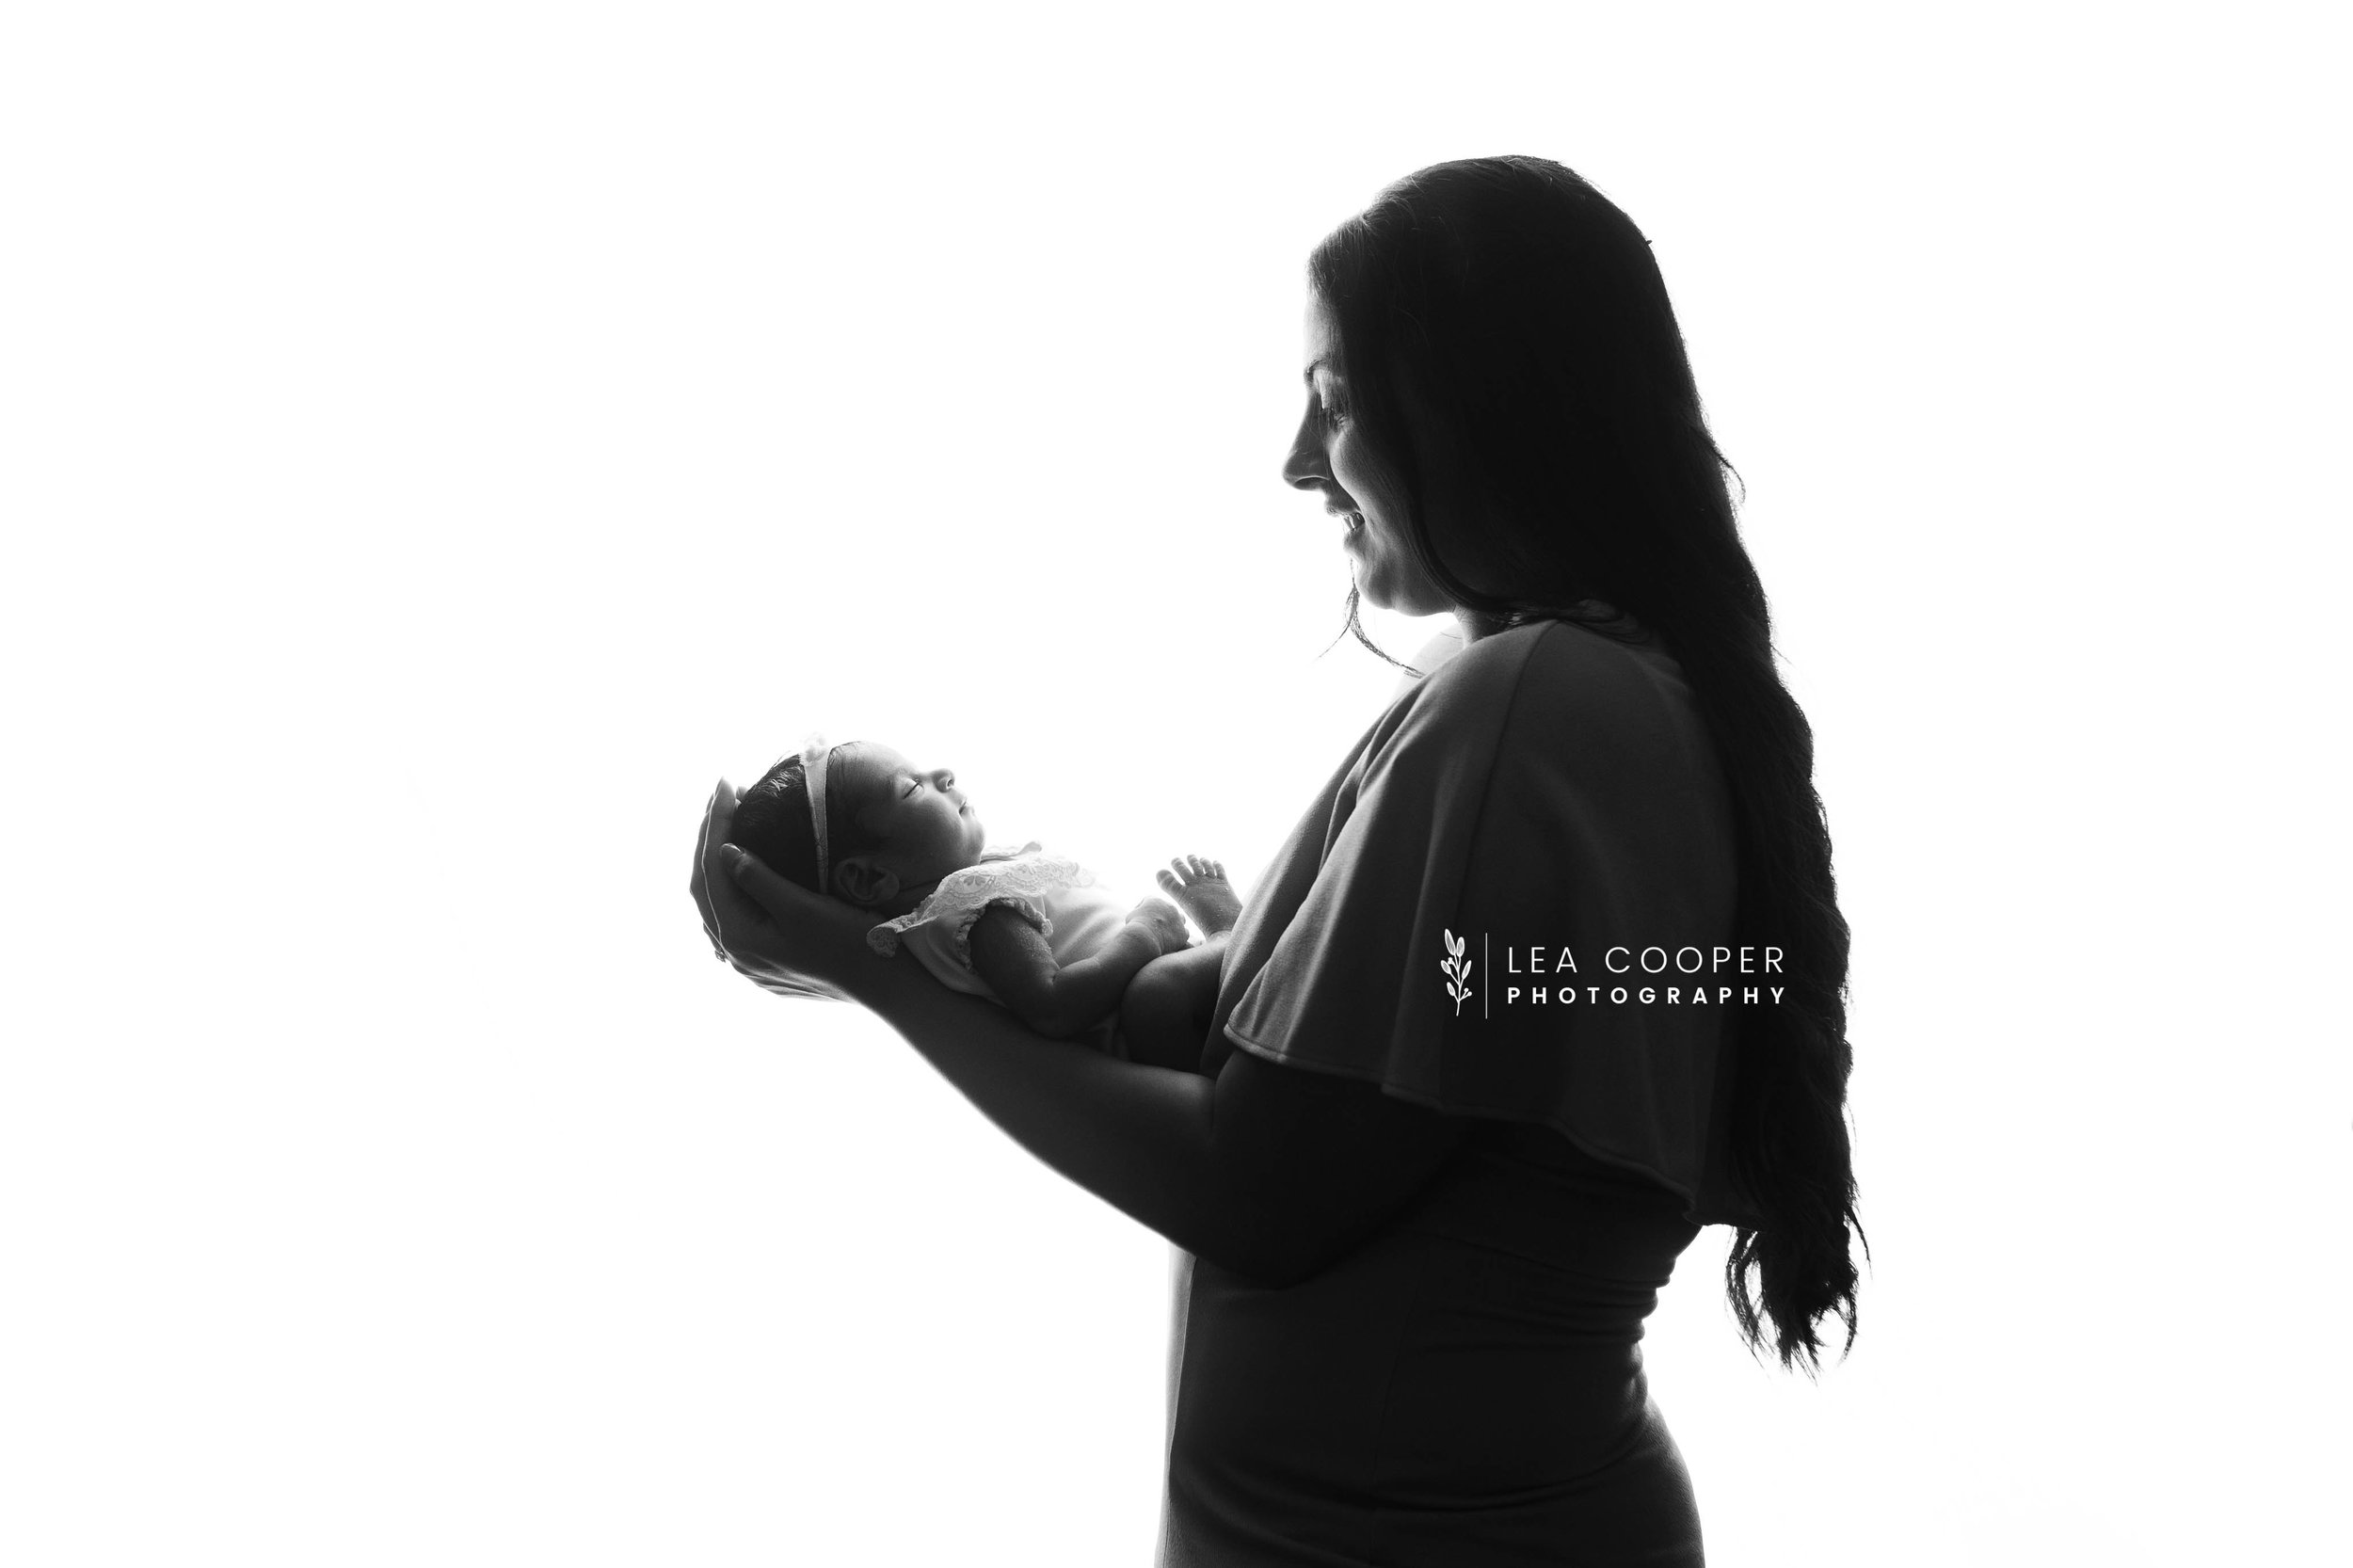 LEA-COOPER-PHOTOGRAPHY-NEWBORN-PHOTOGRAPHER-BABY-PHOTOGRAPHY-NEWBORN-SESSION-WILLENHALL-WOLVERHAMPTON-WEST-MIDLANDS-UK-4.jpg